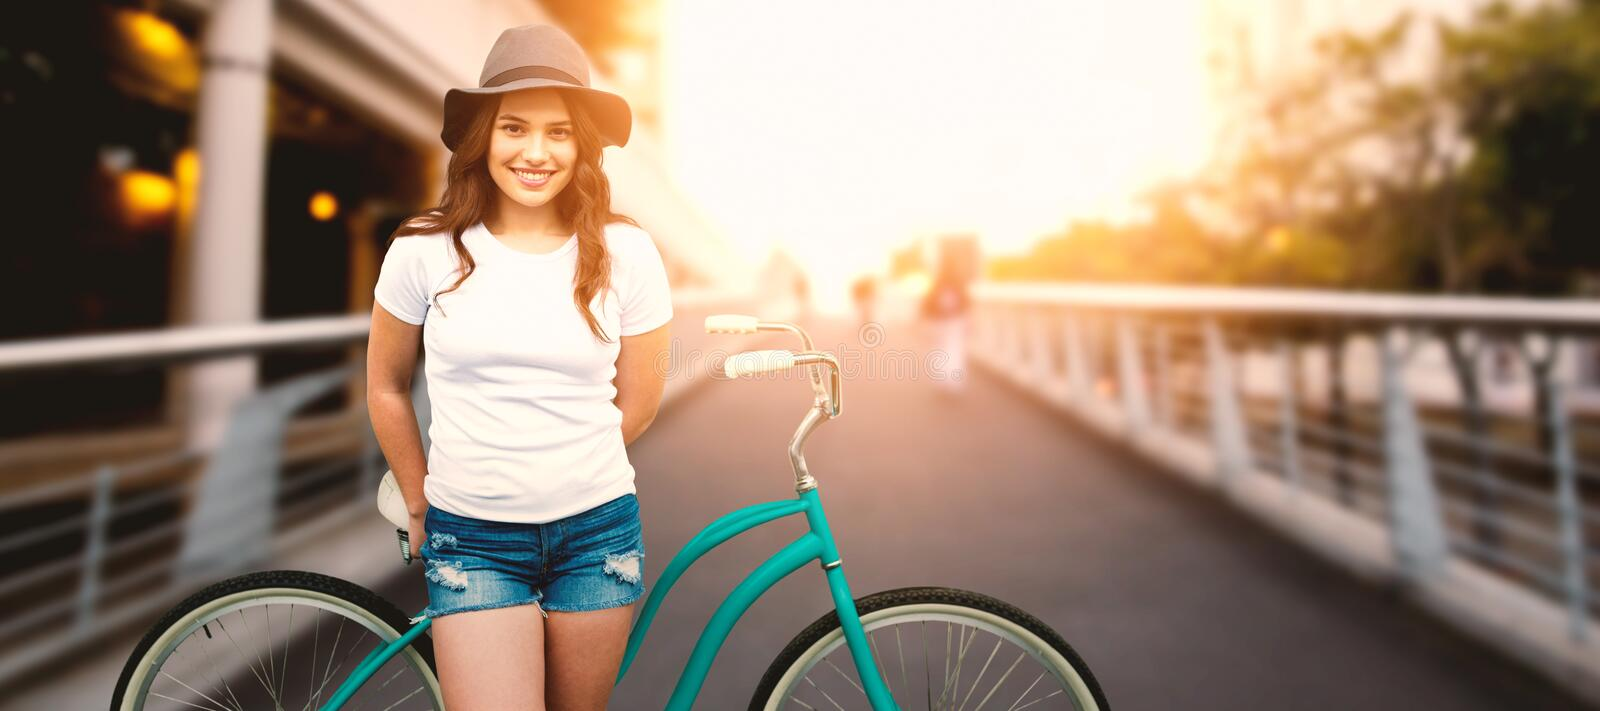 Composite image of portrait of smiling woman with bicycle. Portrait of smiling woman with bicycle against footbridge against sky in city royalty free stock photo